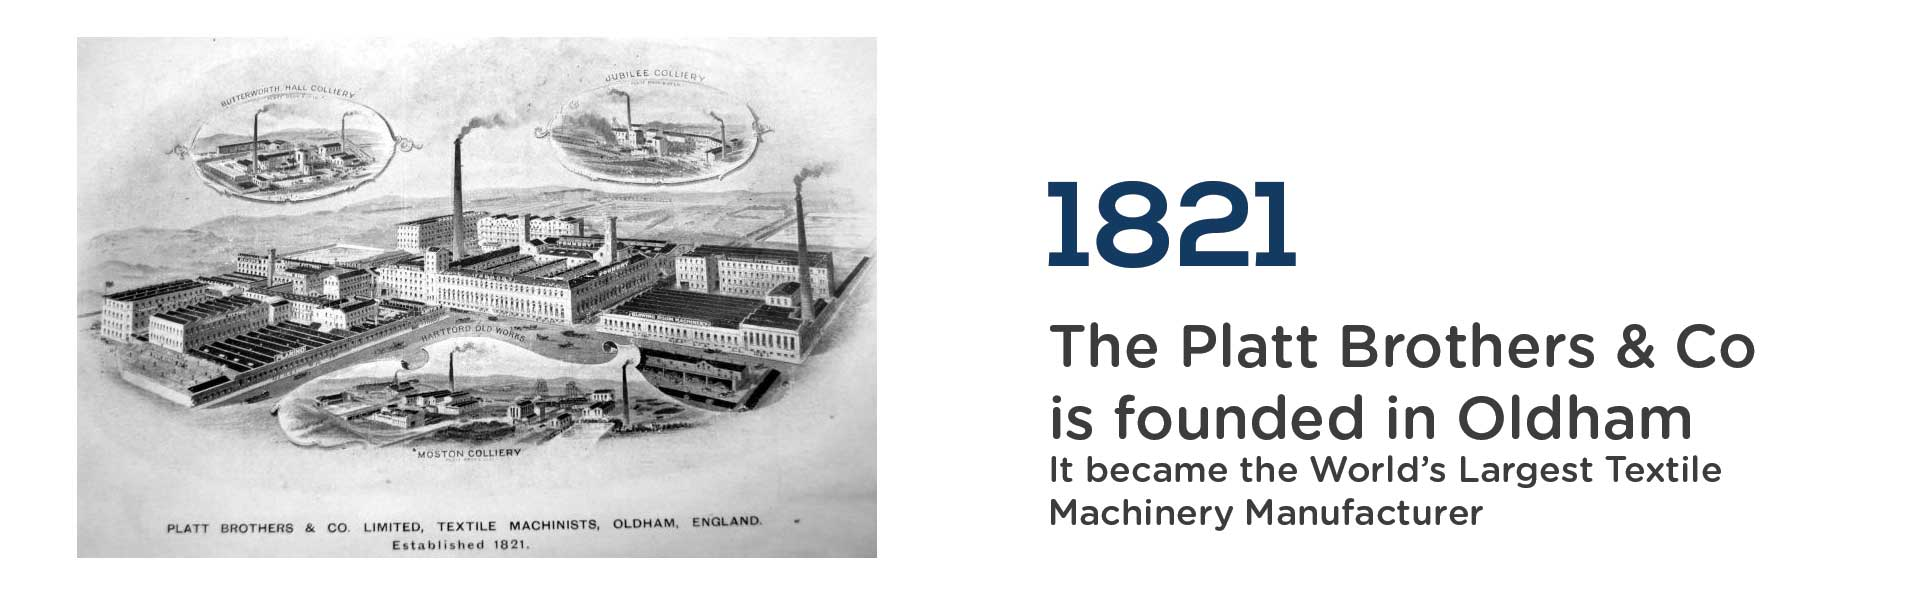 1821 Platt Brothers and Co is founded in Oldham. Wrigley Claydon Solicitors, Trusted for 200 years